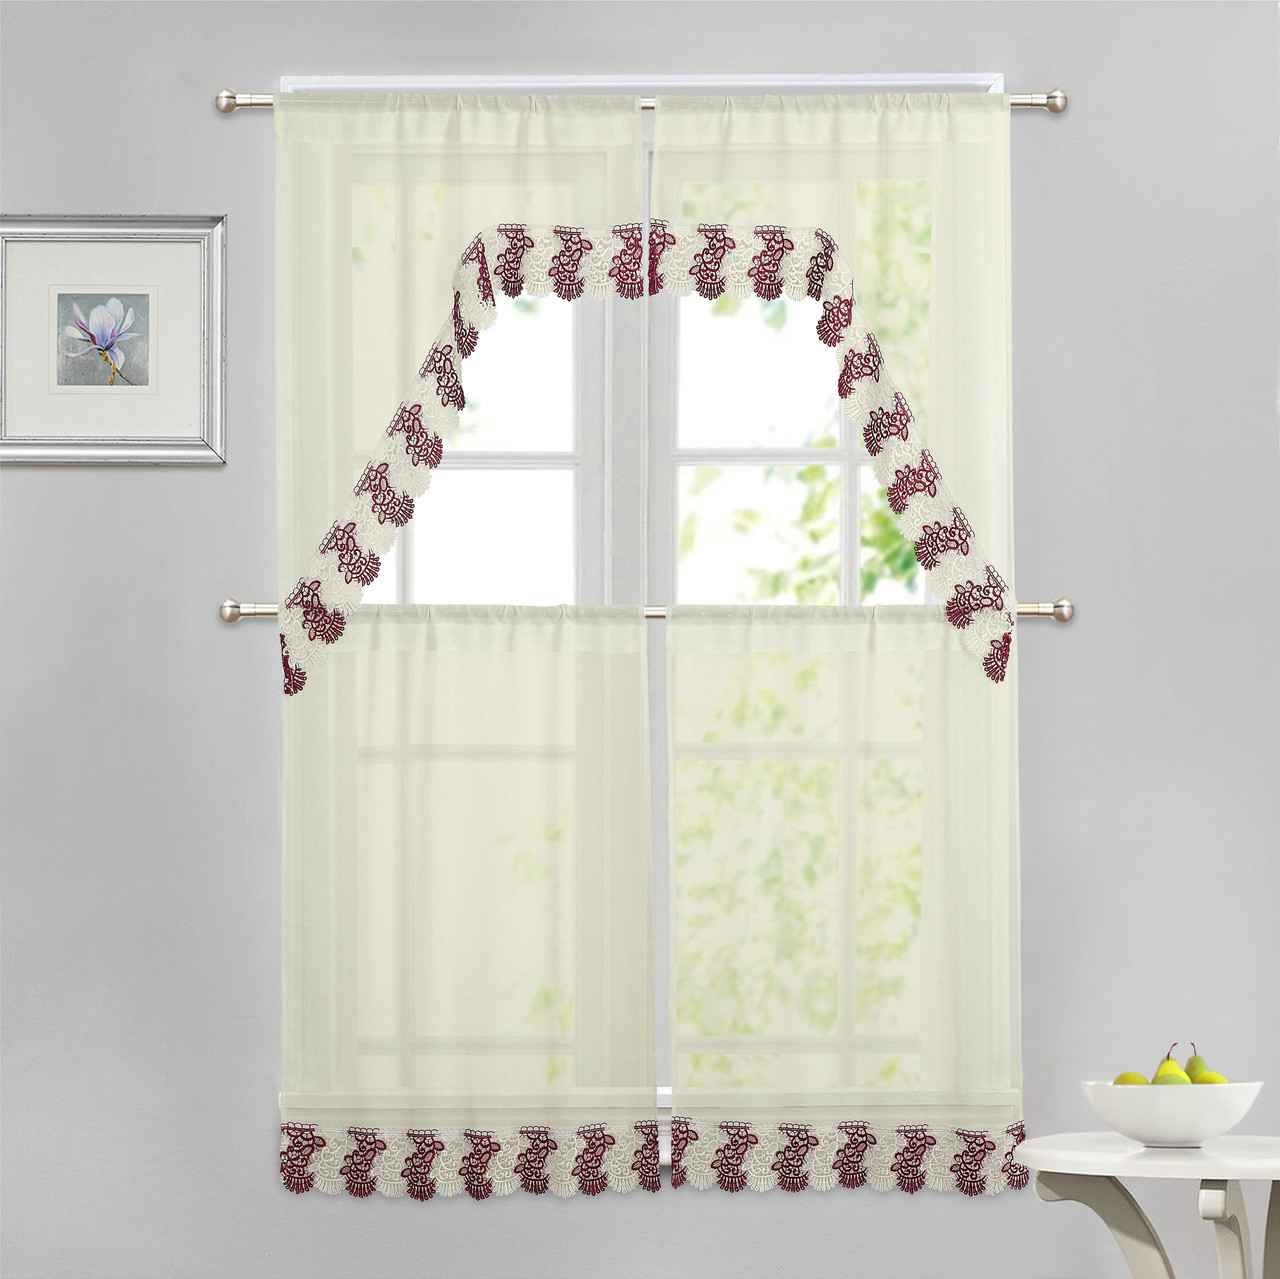 Beige 4 Piece Kitchen Window Curtain Set Burgundy And Ivory Macrame Border 2 Swag And 2 Tier Panels